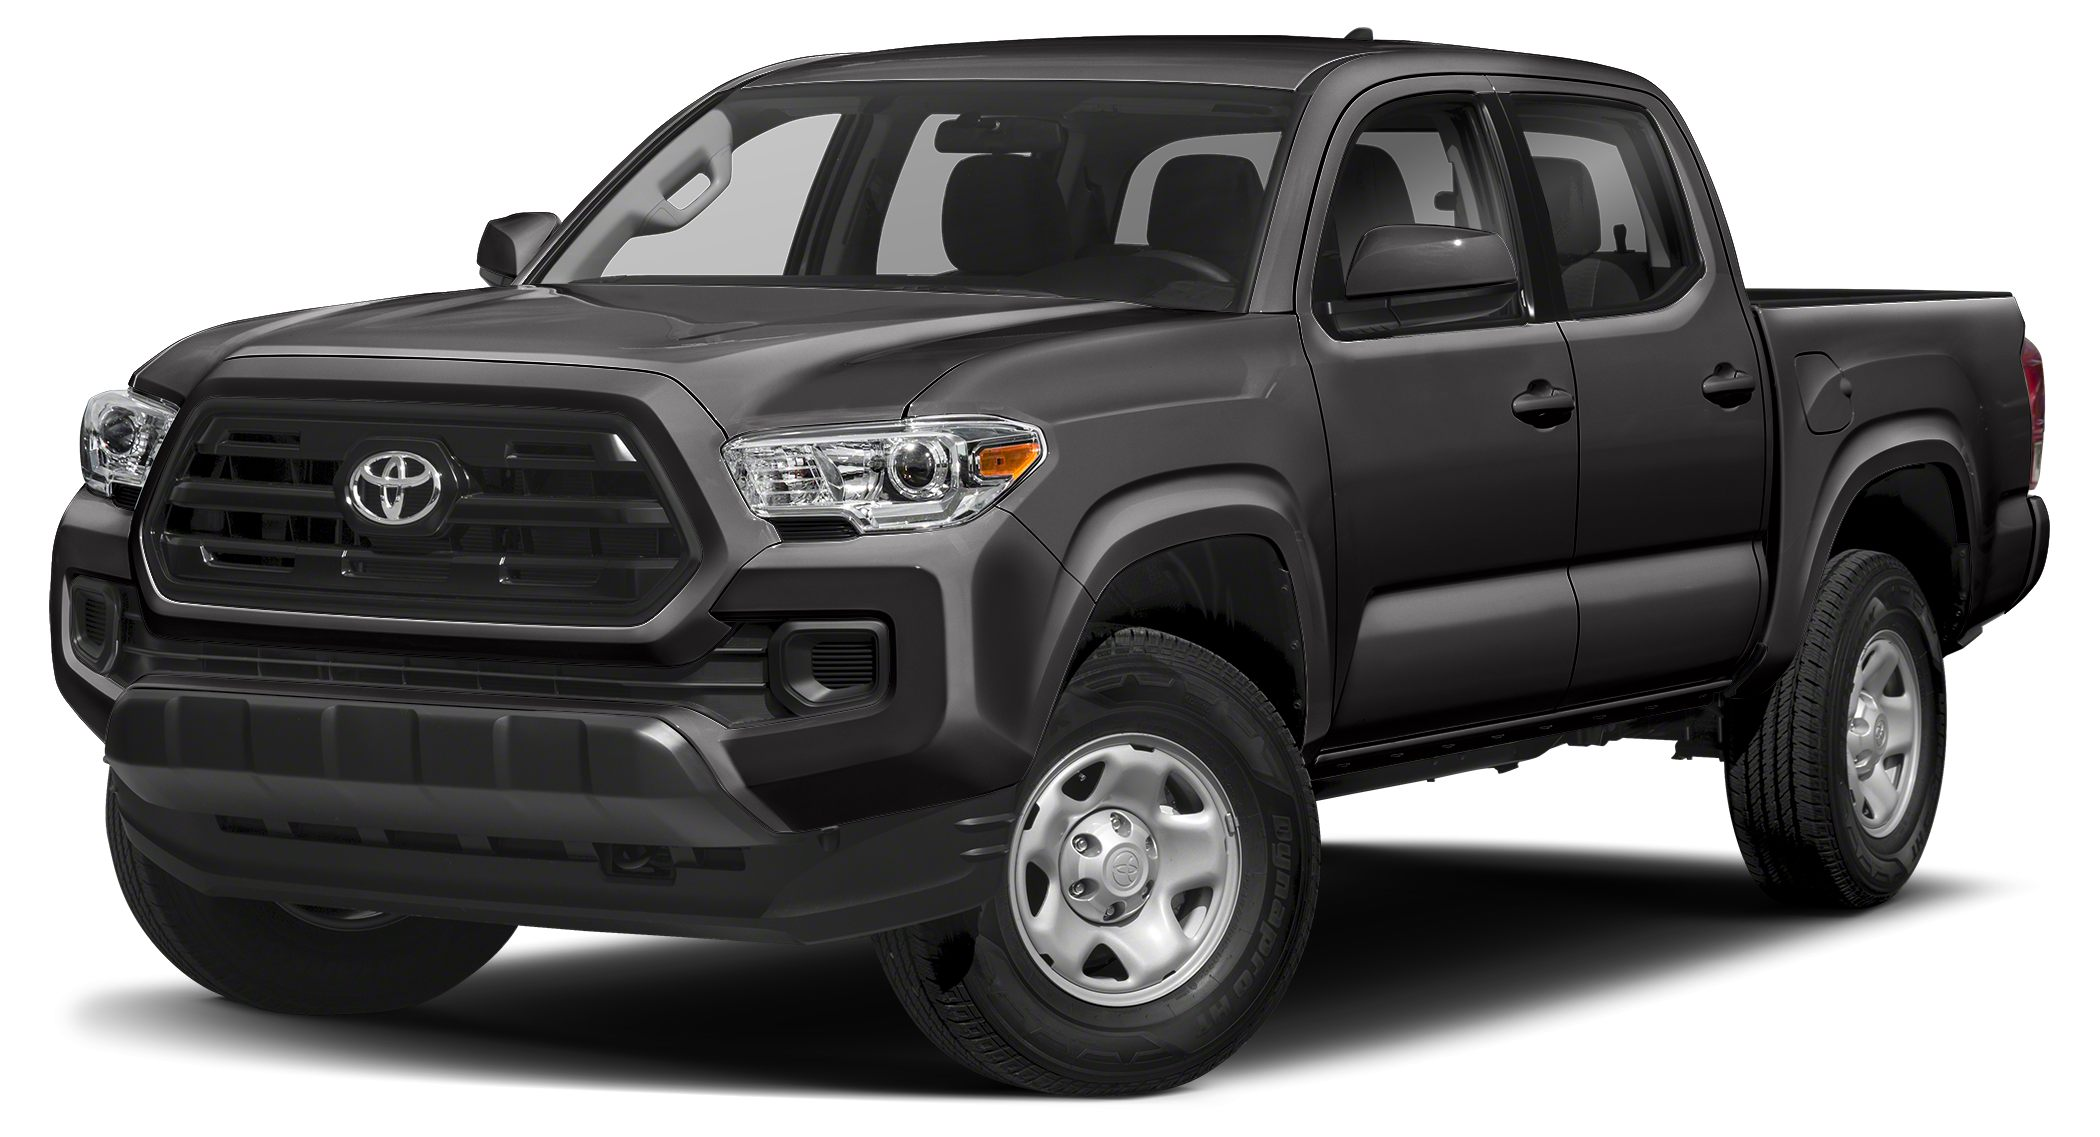 2016 Toyota Tacoma TRD Off Road Check out this 2016 A great truck at a great price Toyota priori